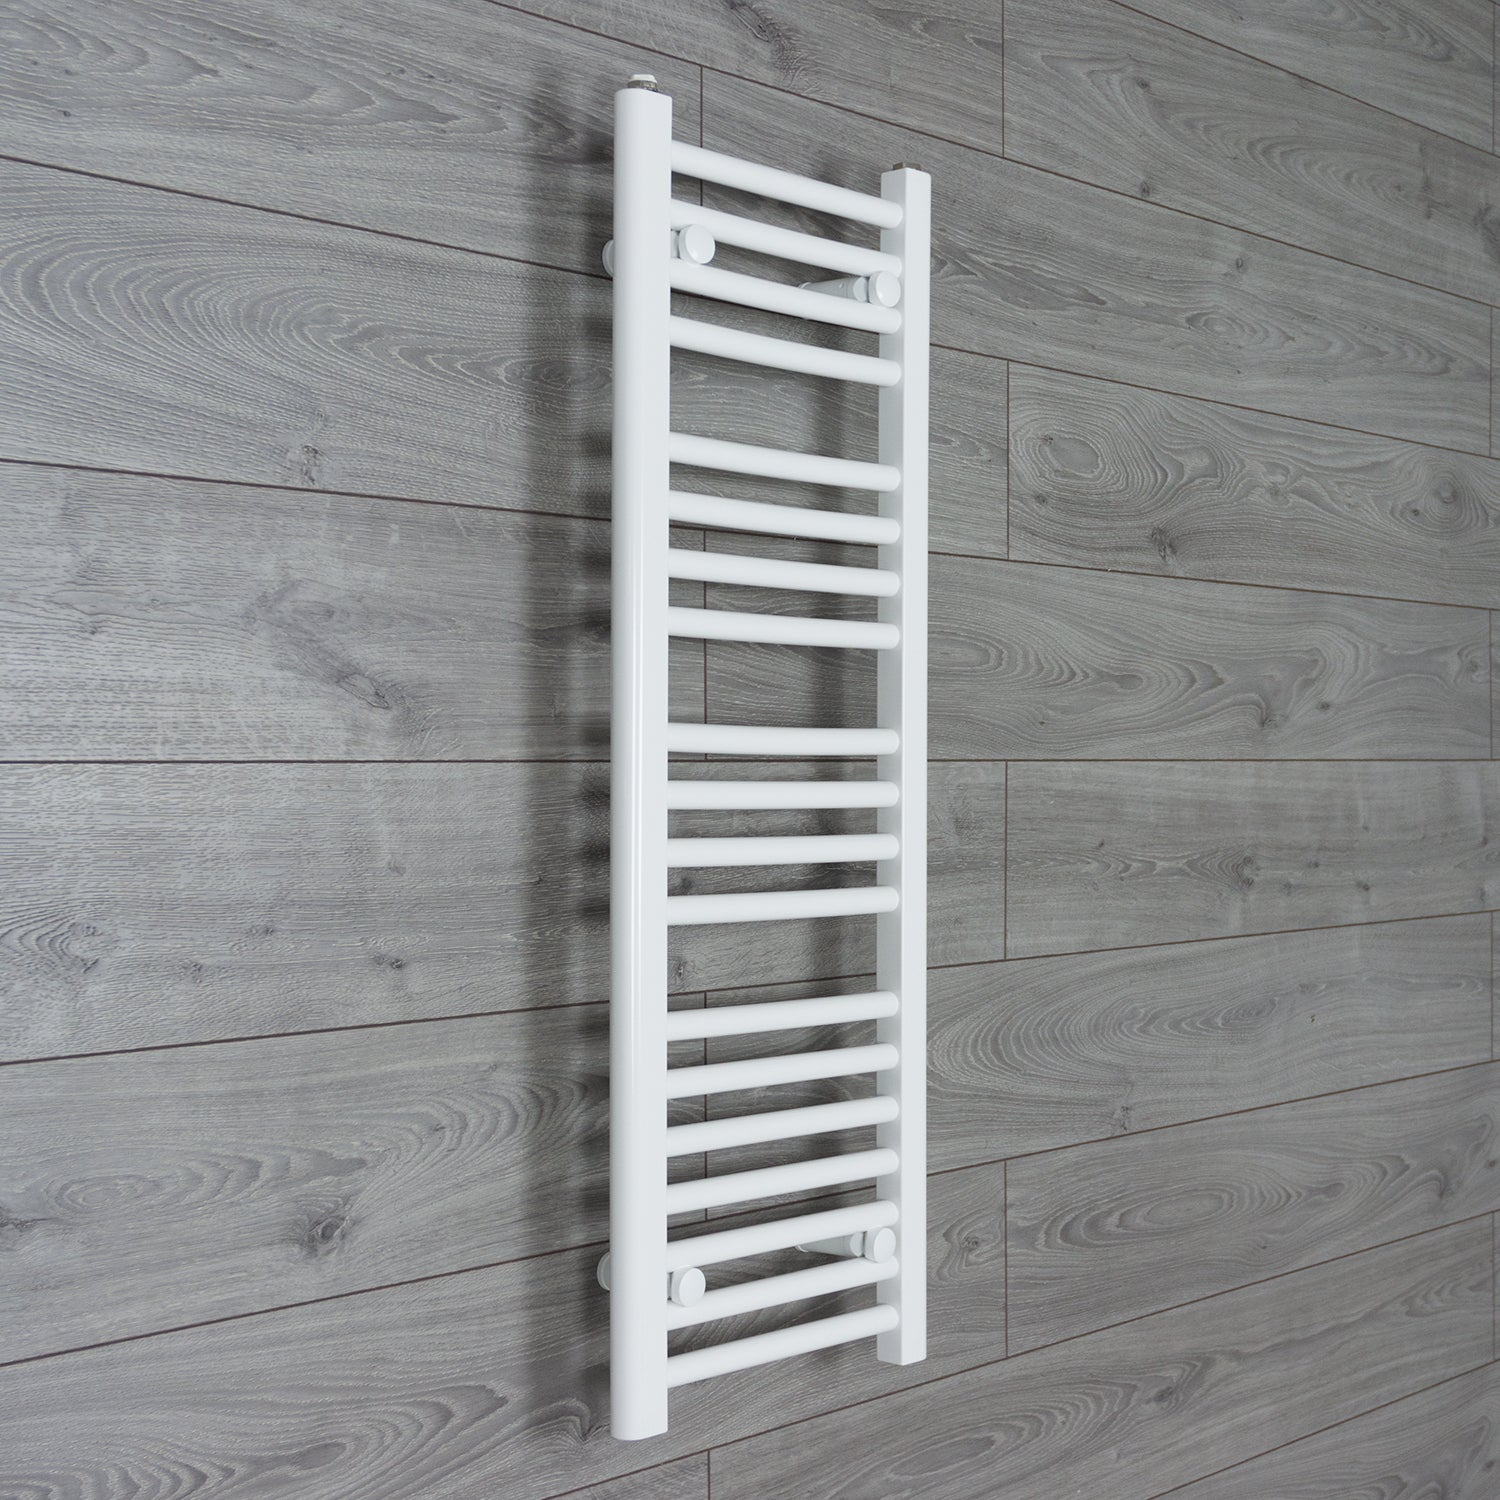 350mm Wide 1000mm High Flat White Heated Towel Rail Radiator HTR,Towel Rail Only